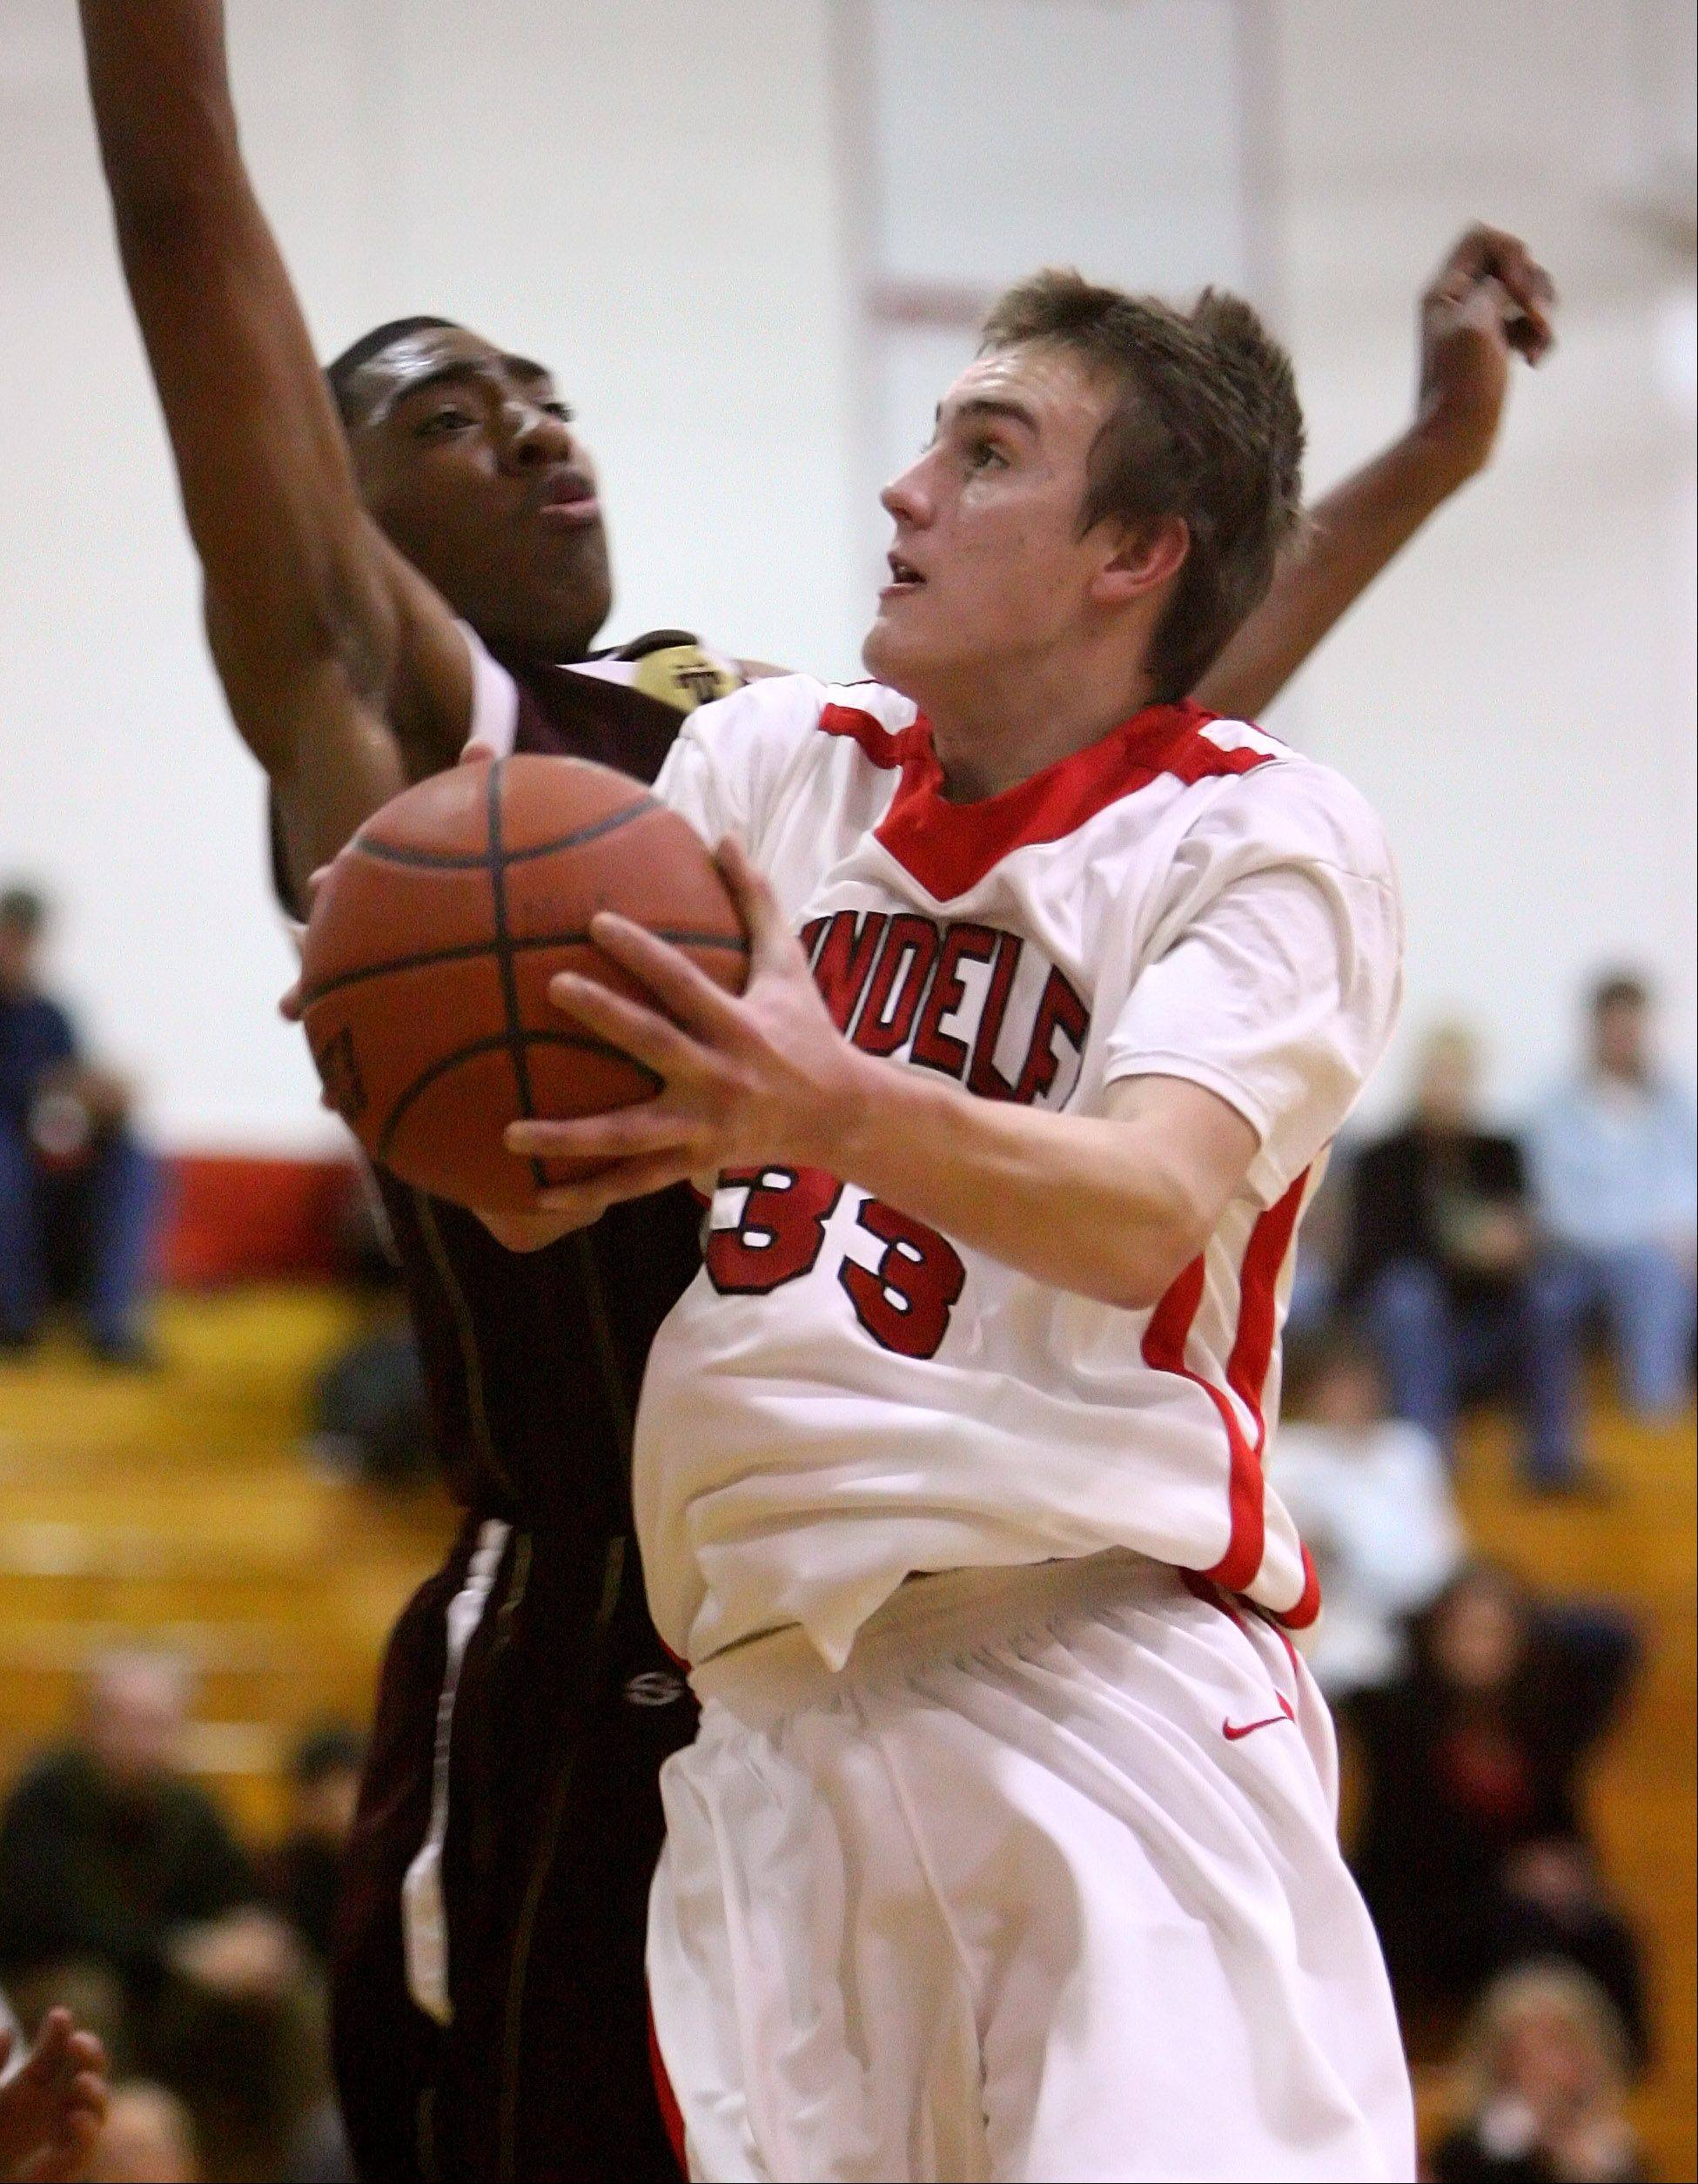 Mundelein's Sean O'Brien drives on Uplift's Corey Gonore during nonconference play last season at Mundelein. O'Brien has announched he'll play for Southern Illinois next school year.